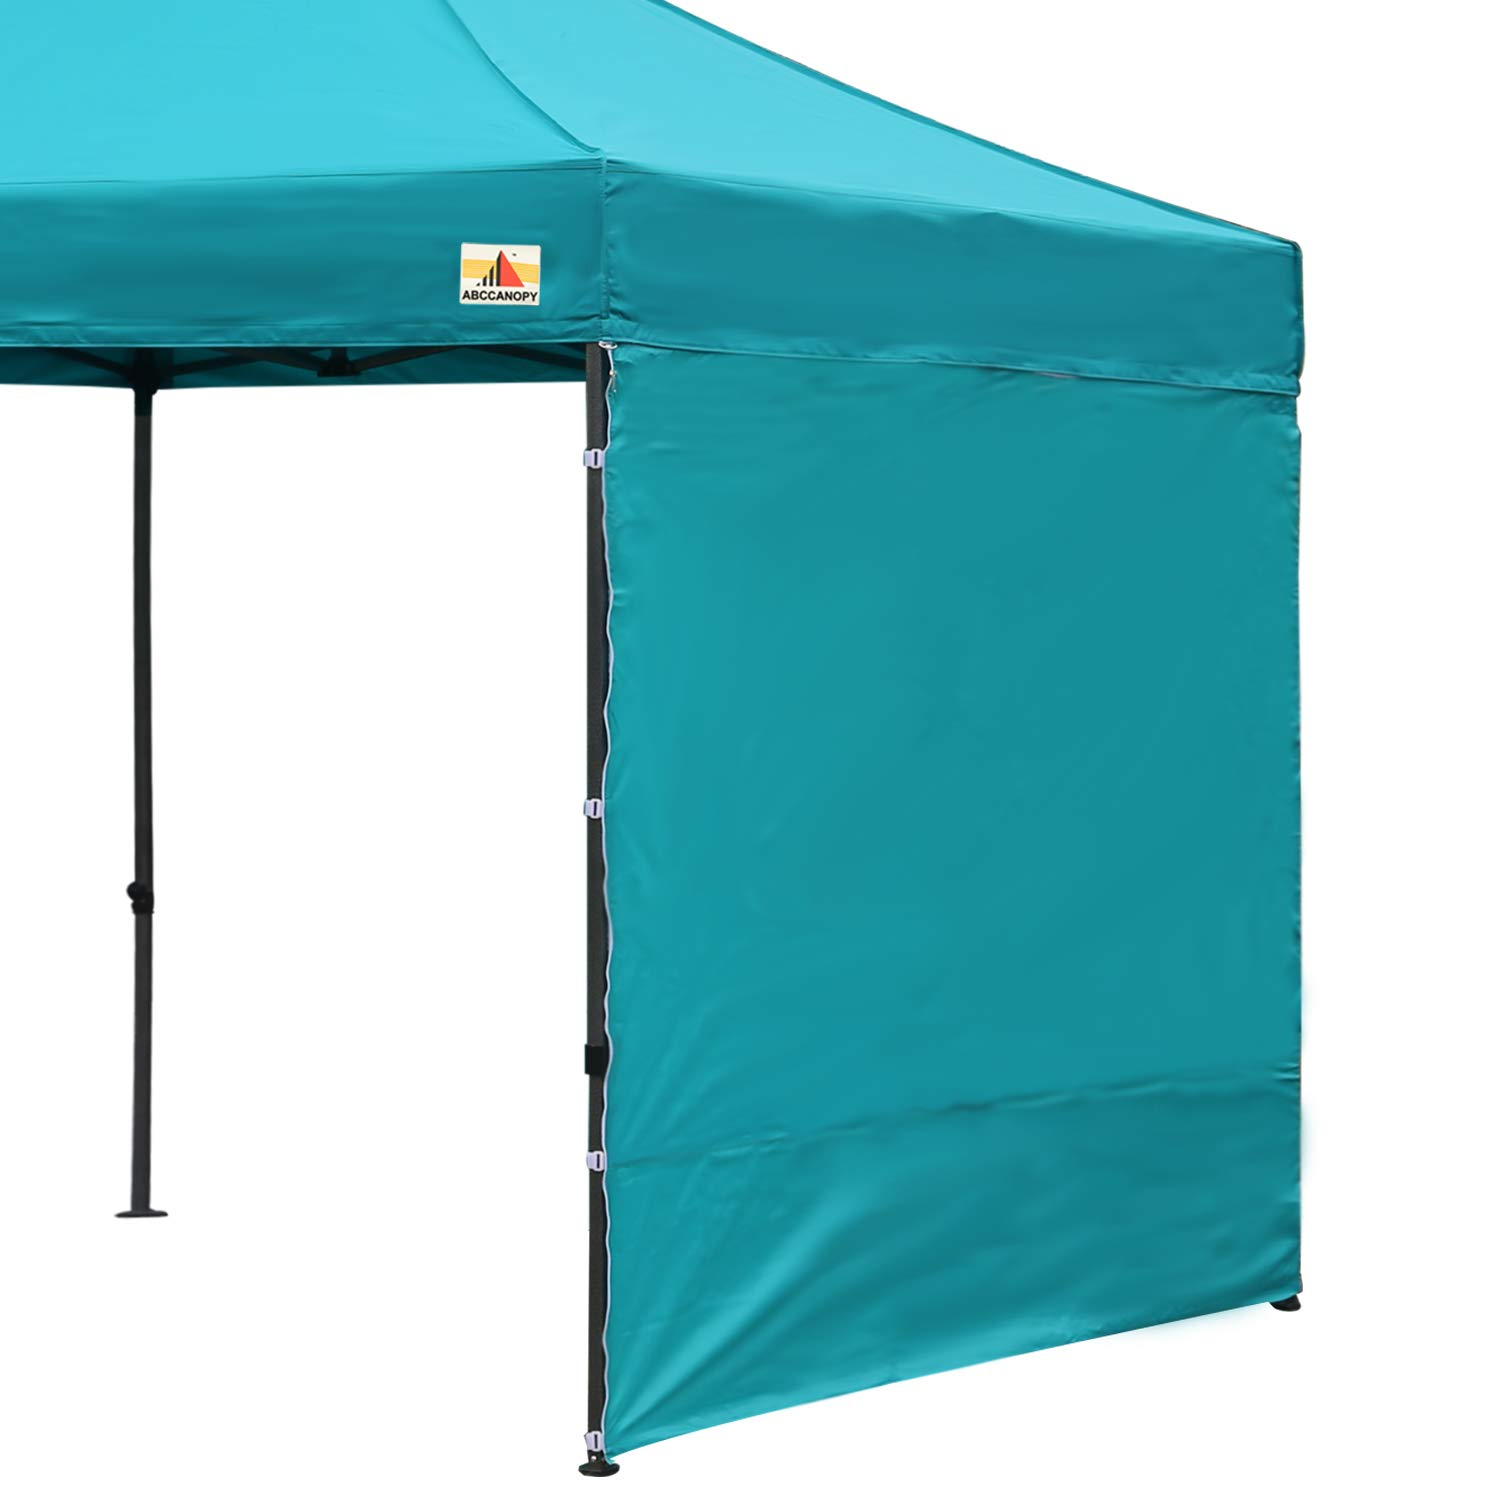 ABCCANOPY 15+Colors 10' Sun Wall for 10'x 10' Straight Leg pop up Canopy Tent, 10' Sidewall kit (1 Panel) with Truss Straps (Turquoise-1) by ABCCANOPY